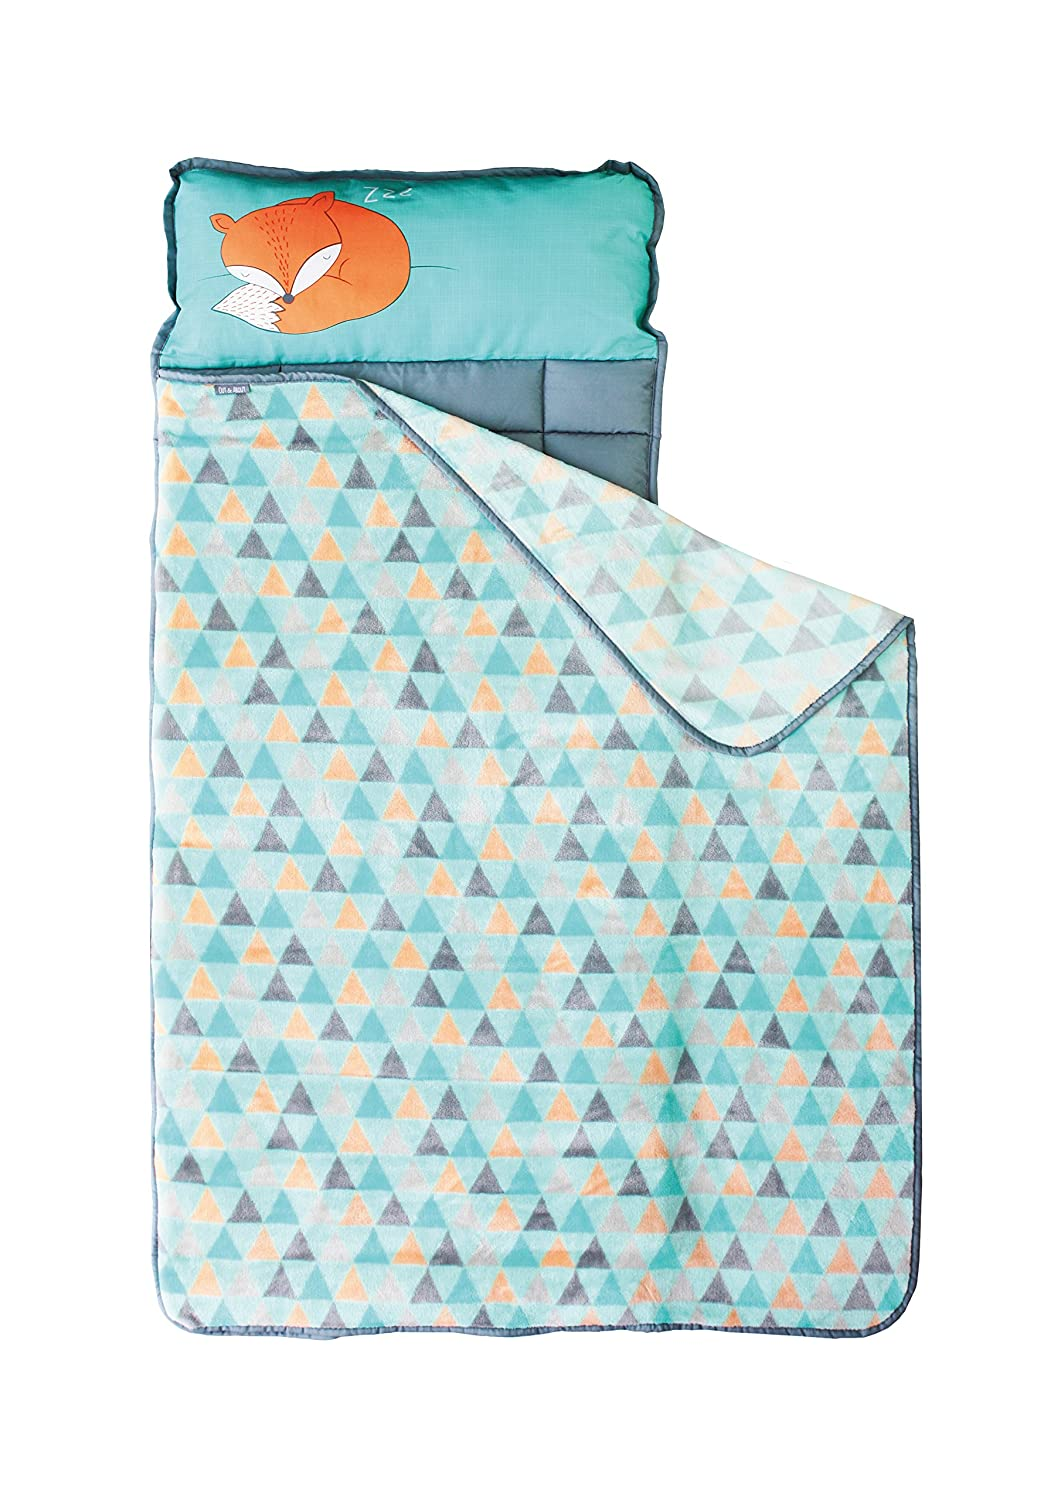 Nap Mats for Preschool Kinder Daycare – Toddler Kids Portable Sleeping Mat with Blanket + Pillow – Perfect for Boys or Girls (Sleepy Fox)